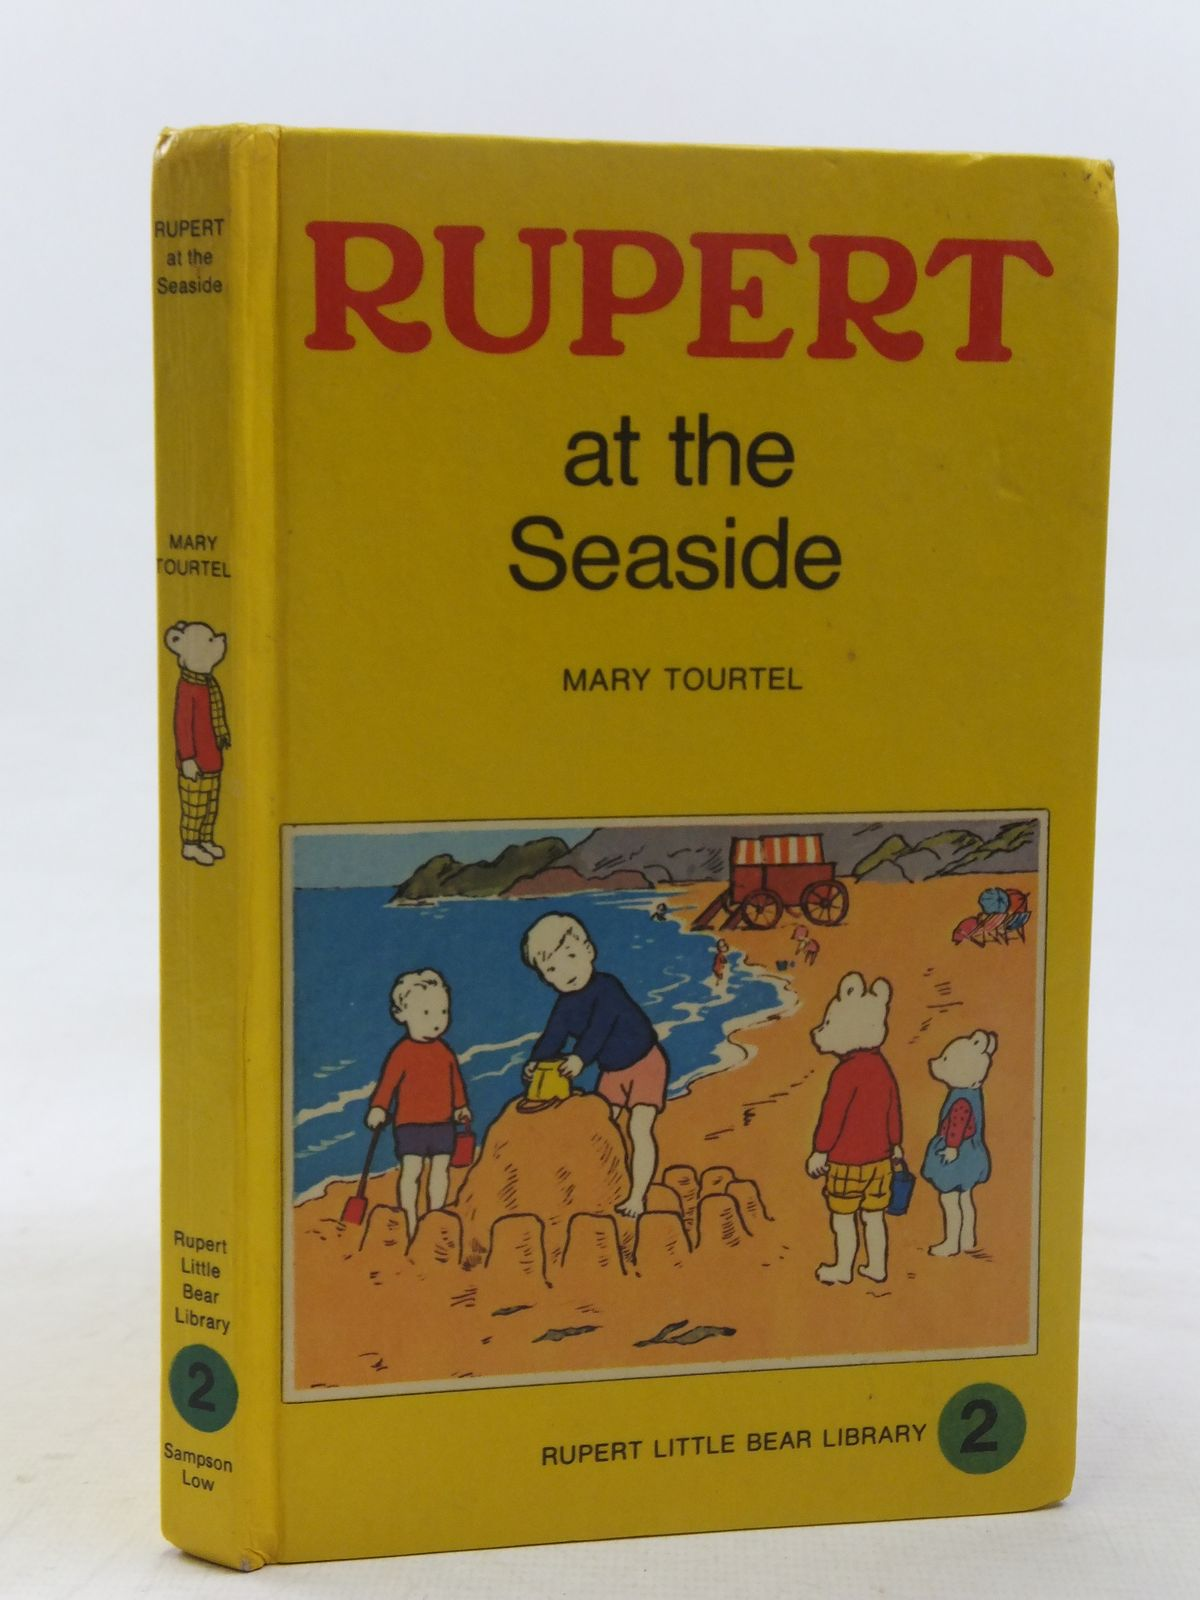 Photo of RUPERT AT THE SEASIDE - RUPERT LITTLE BEAR LIBRARY No. 2 (WOOLWORTH) written by Tourtel, Mary illustrated by Tourtel, Mary published by Sampson Low, Marston & Co. Ltd. (STOCK CODE: 1607080)  for sale by Stella & Rose's Books